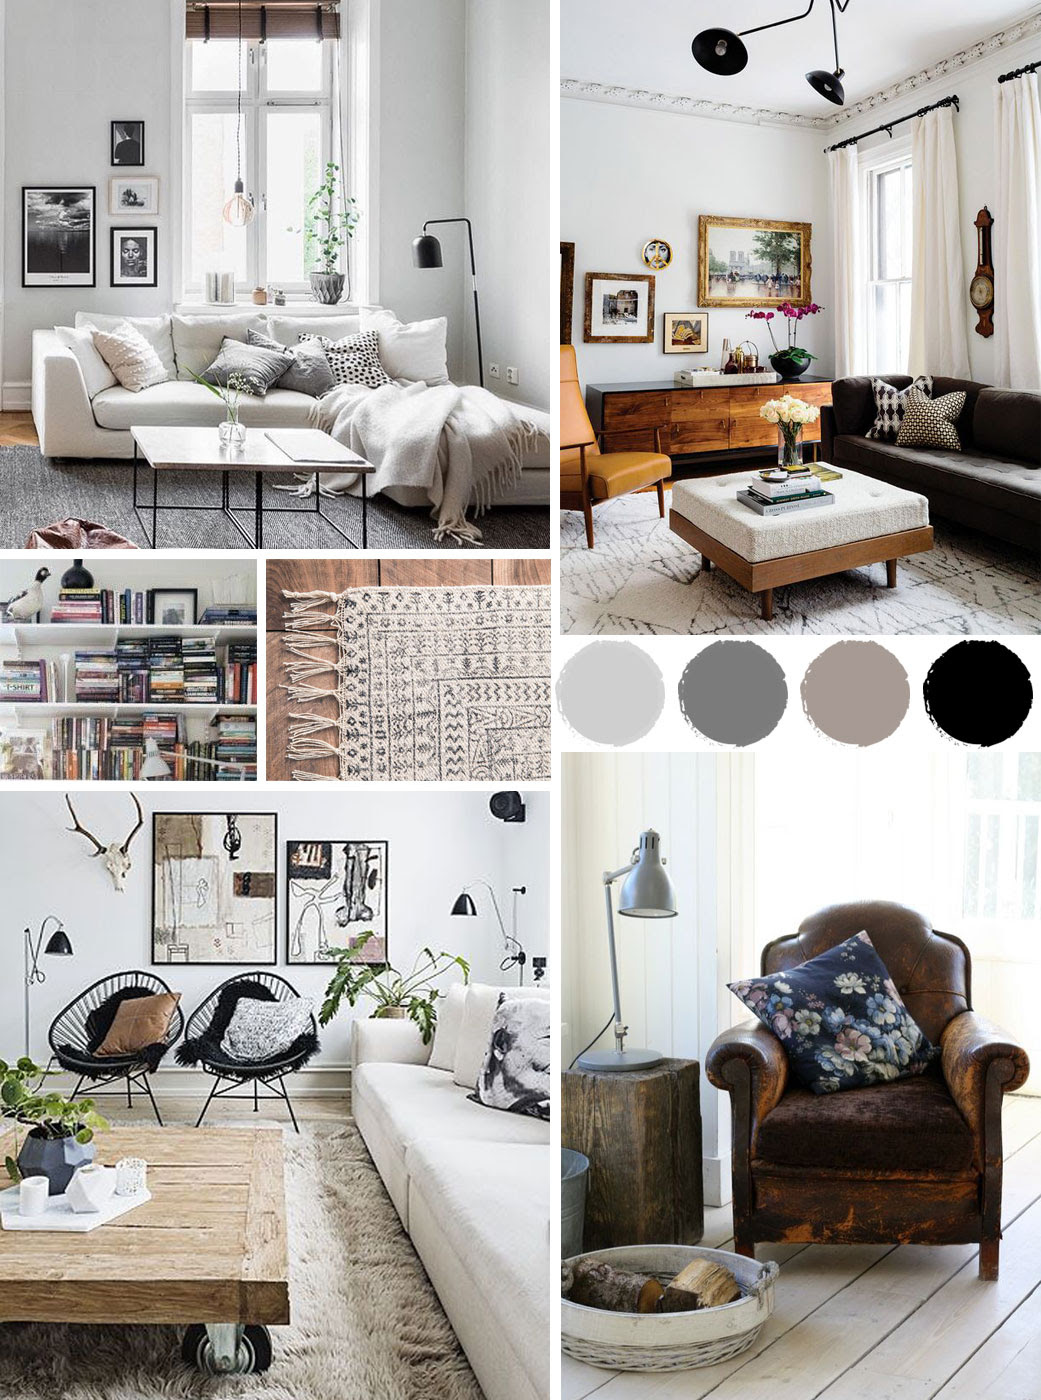 How to Redesign a Living Room - Interior Decorating Colors ...